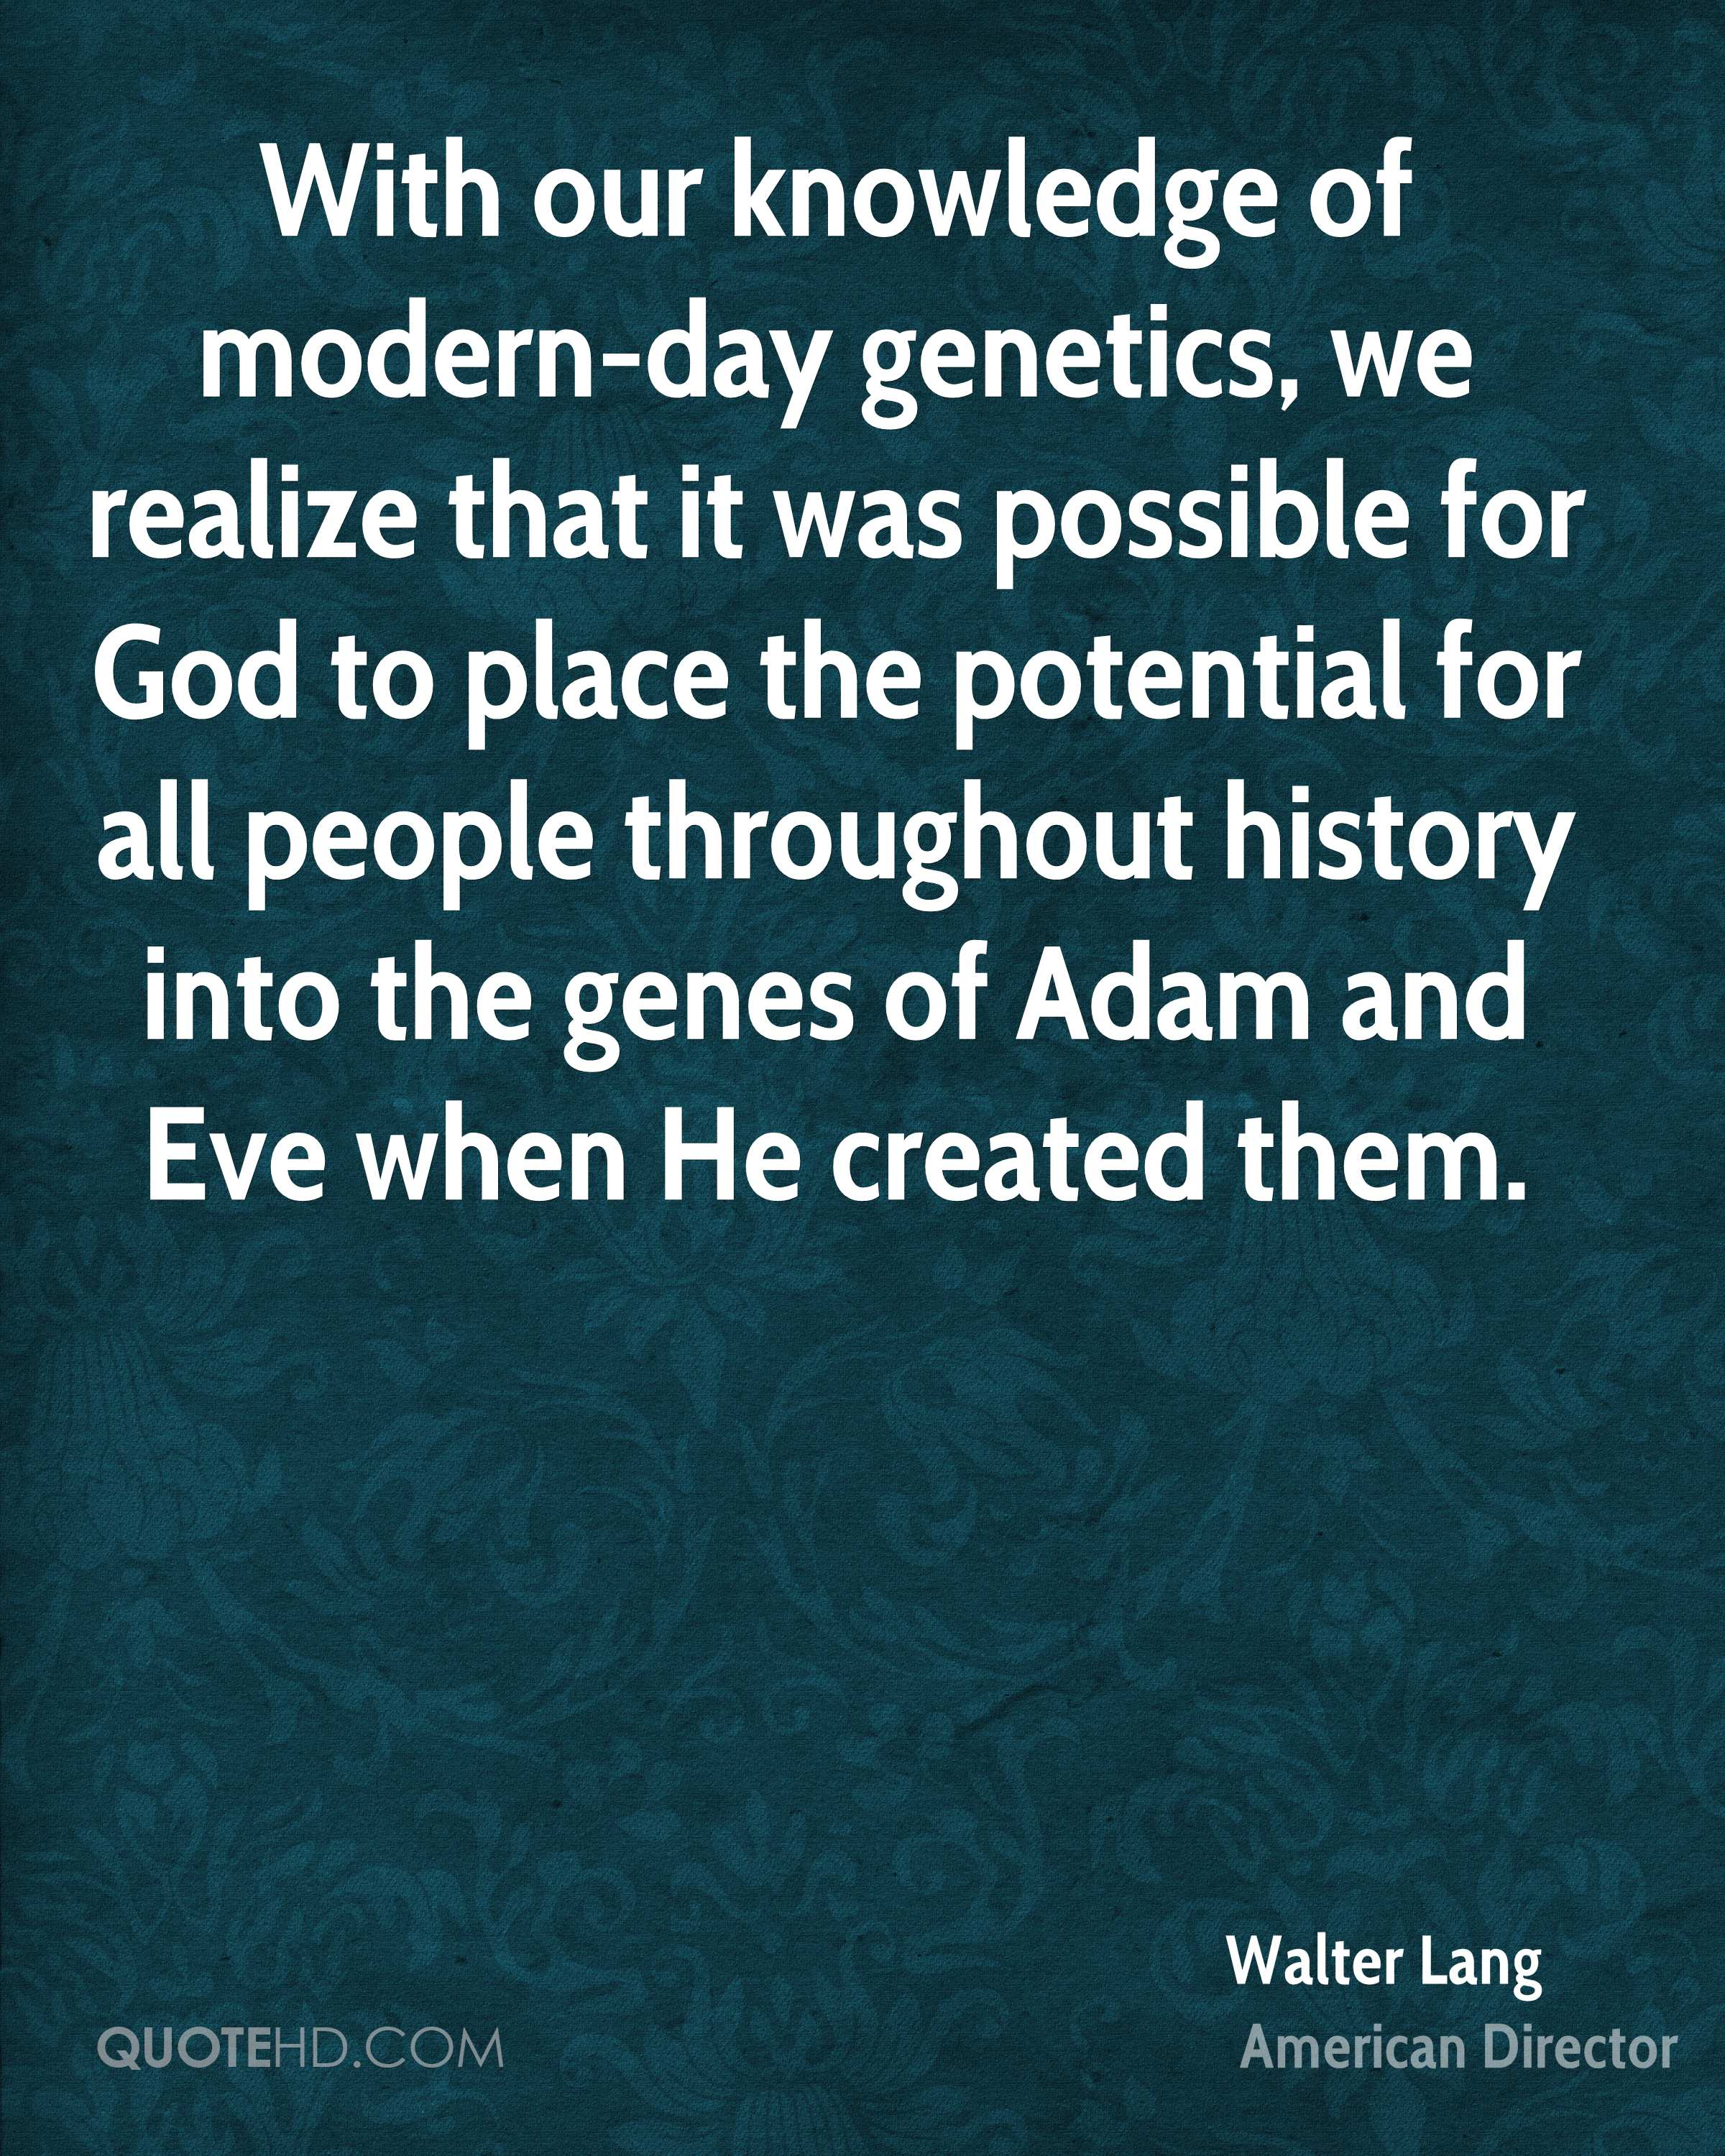 With our knowledge of modern-day genetics, we realize that it was possible for God to place the potential for all people throughout history into the genes of Adam and Eve when He created them.